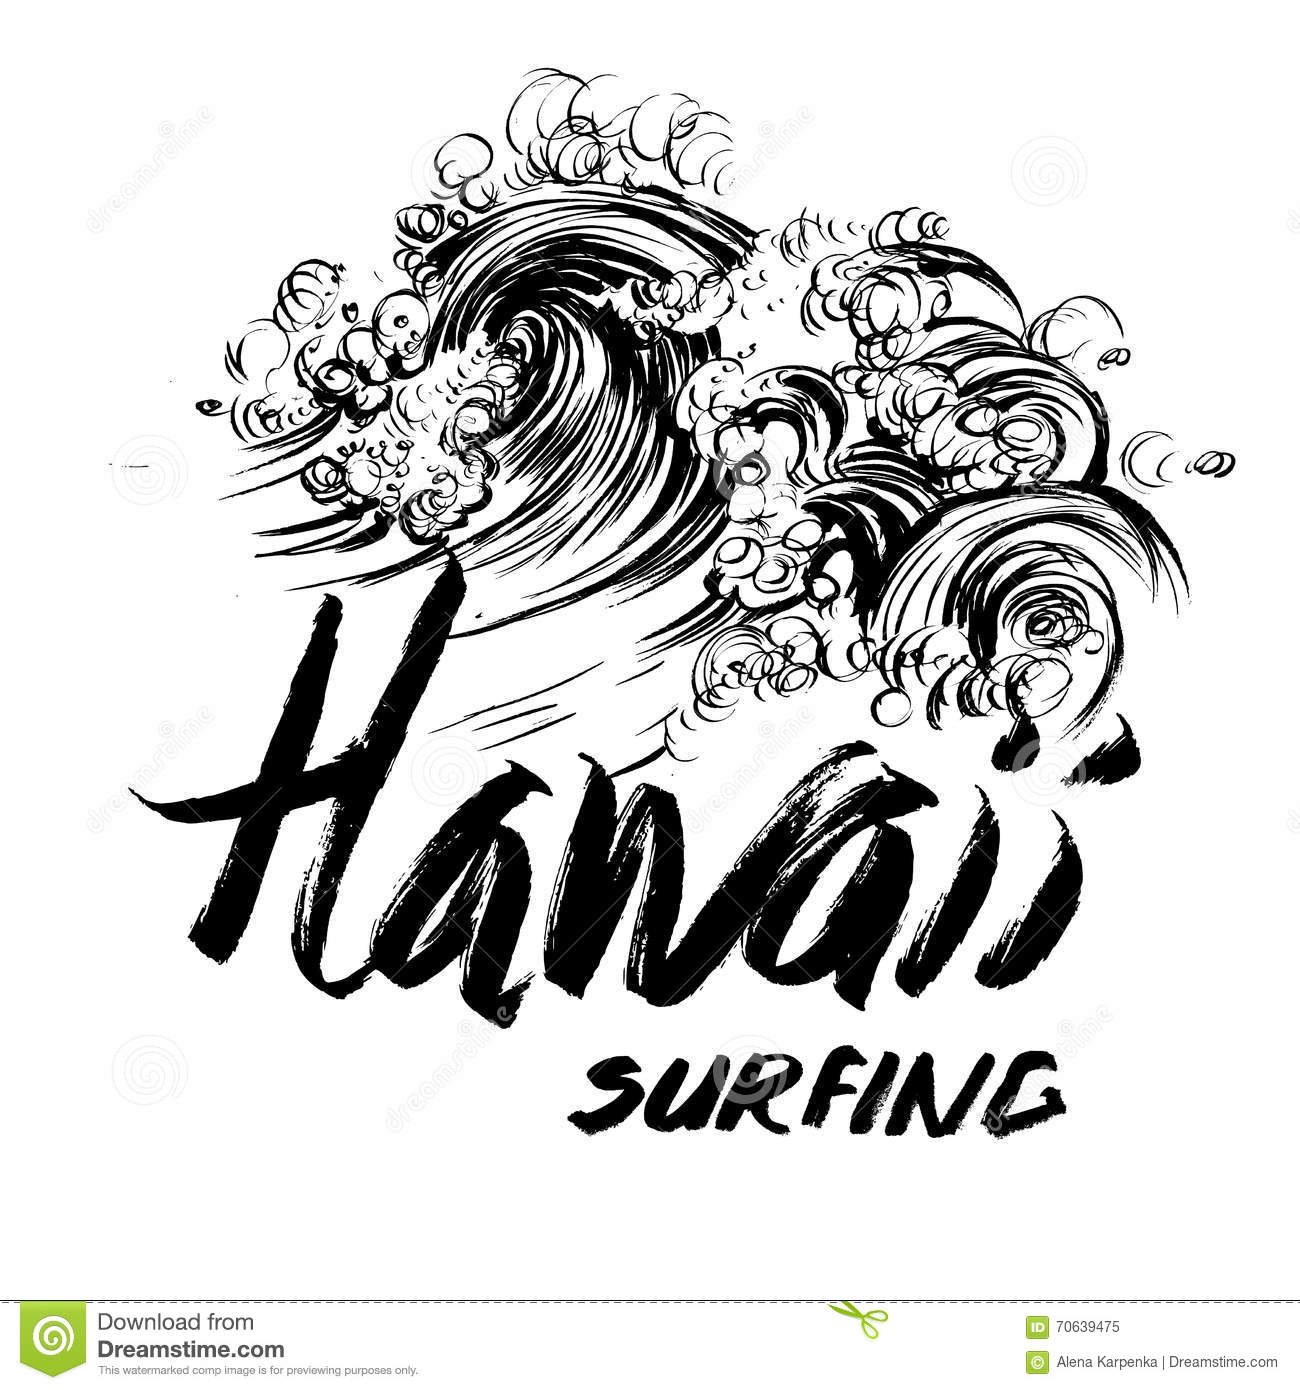 Hawaii Surfing Lettering Brush Ink Sketch Handdrawn